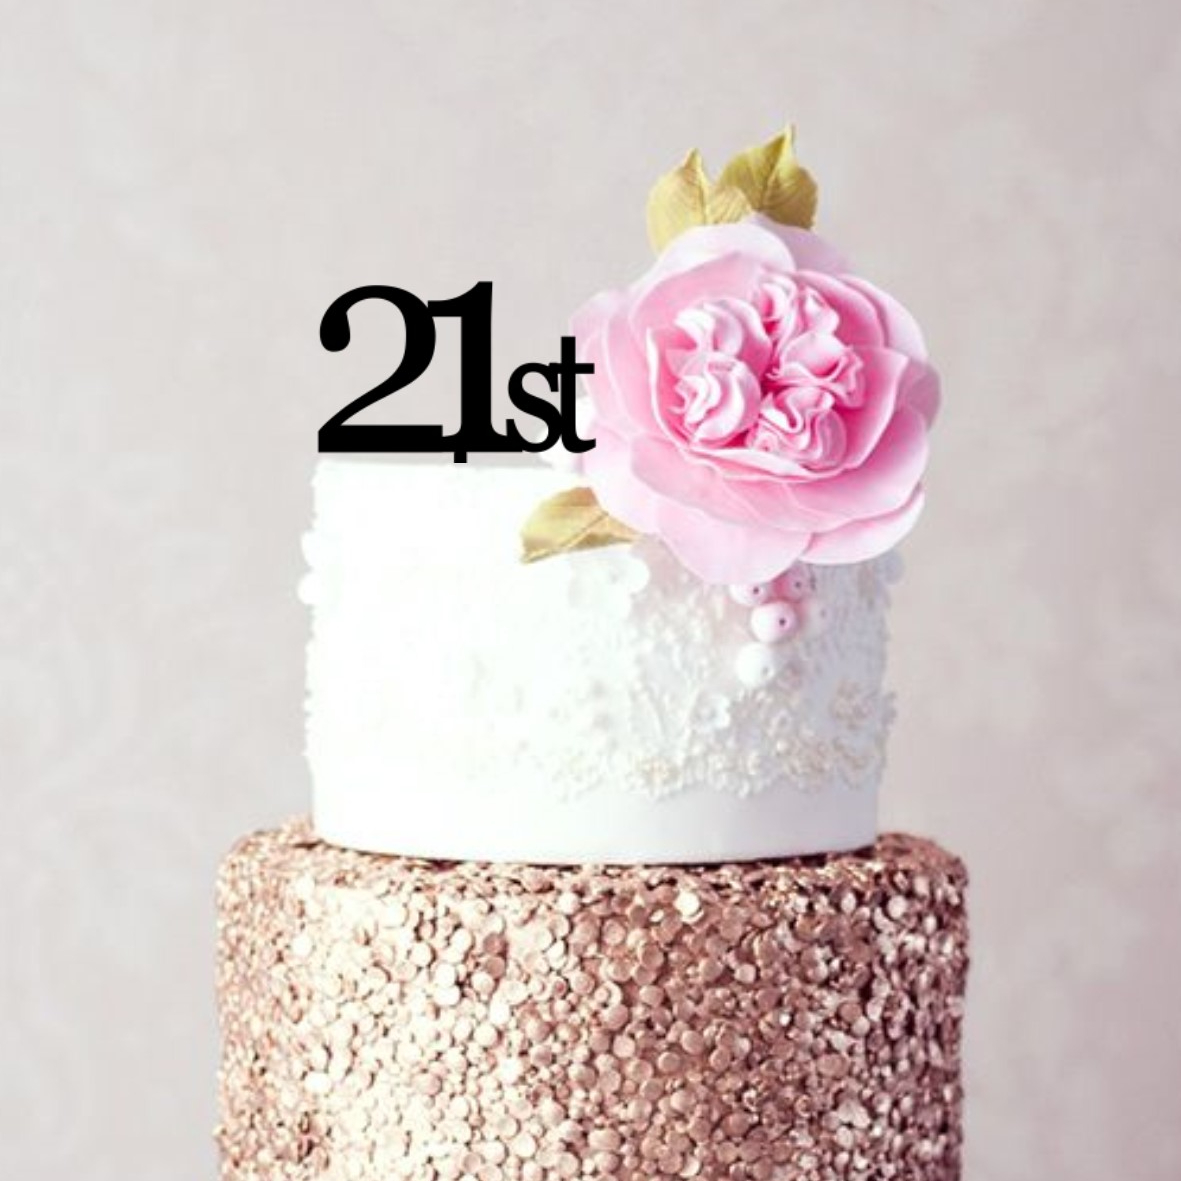 Quick Creations Cake Topper - 21st